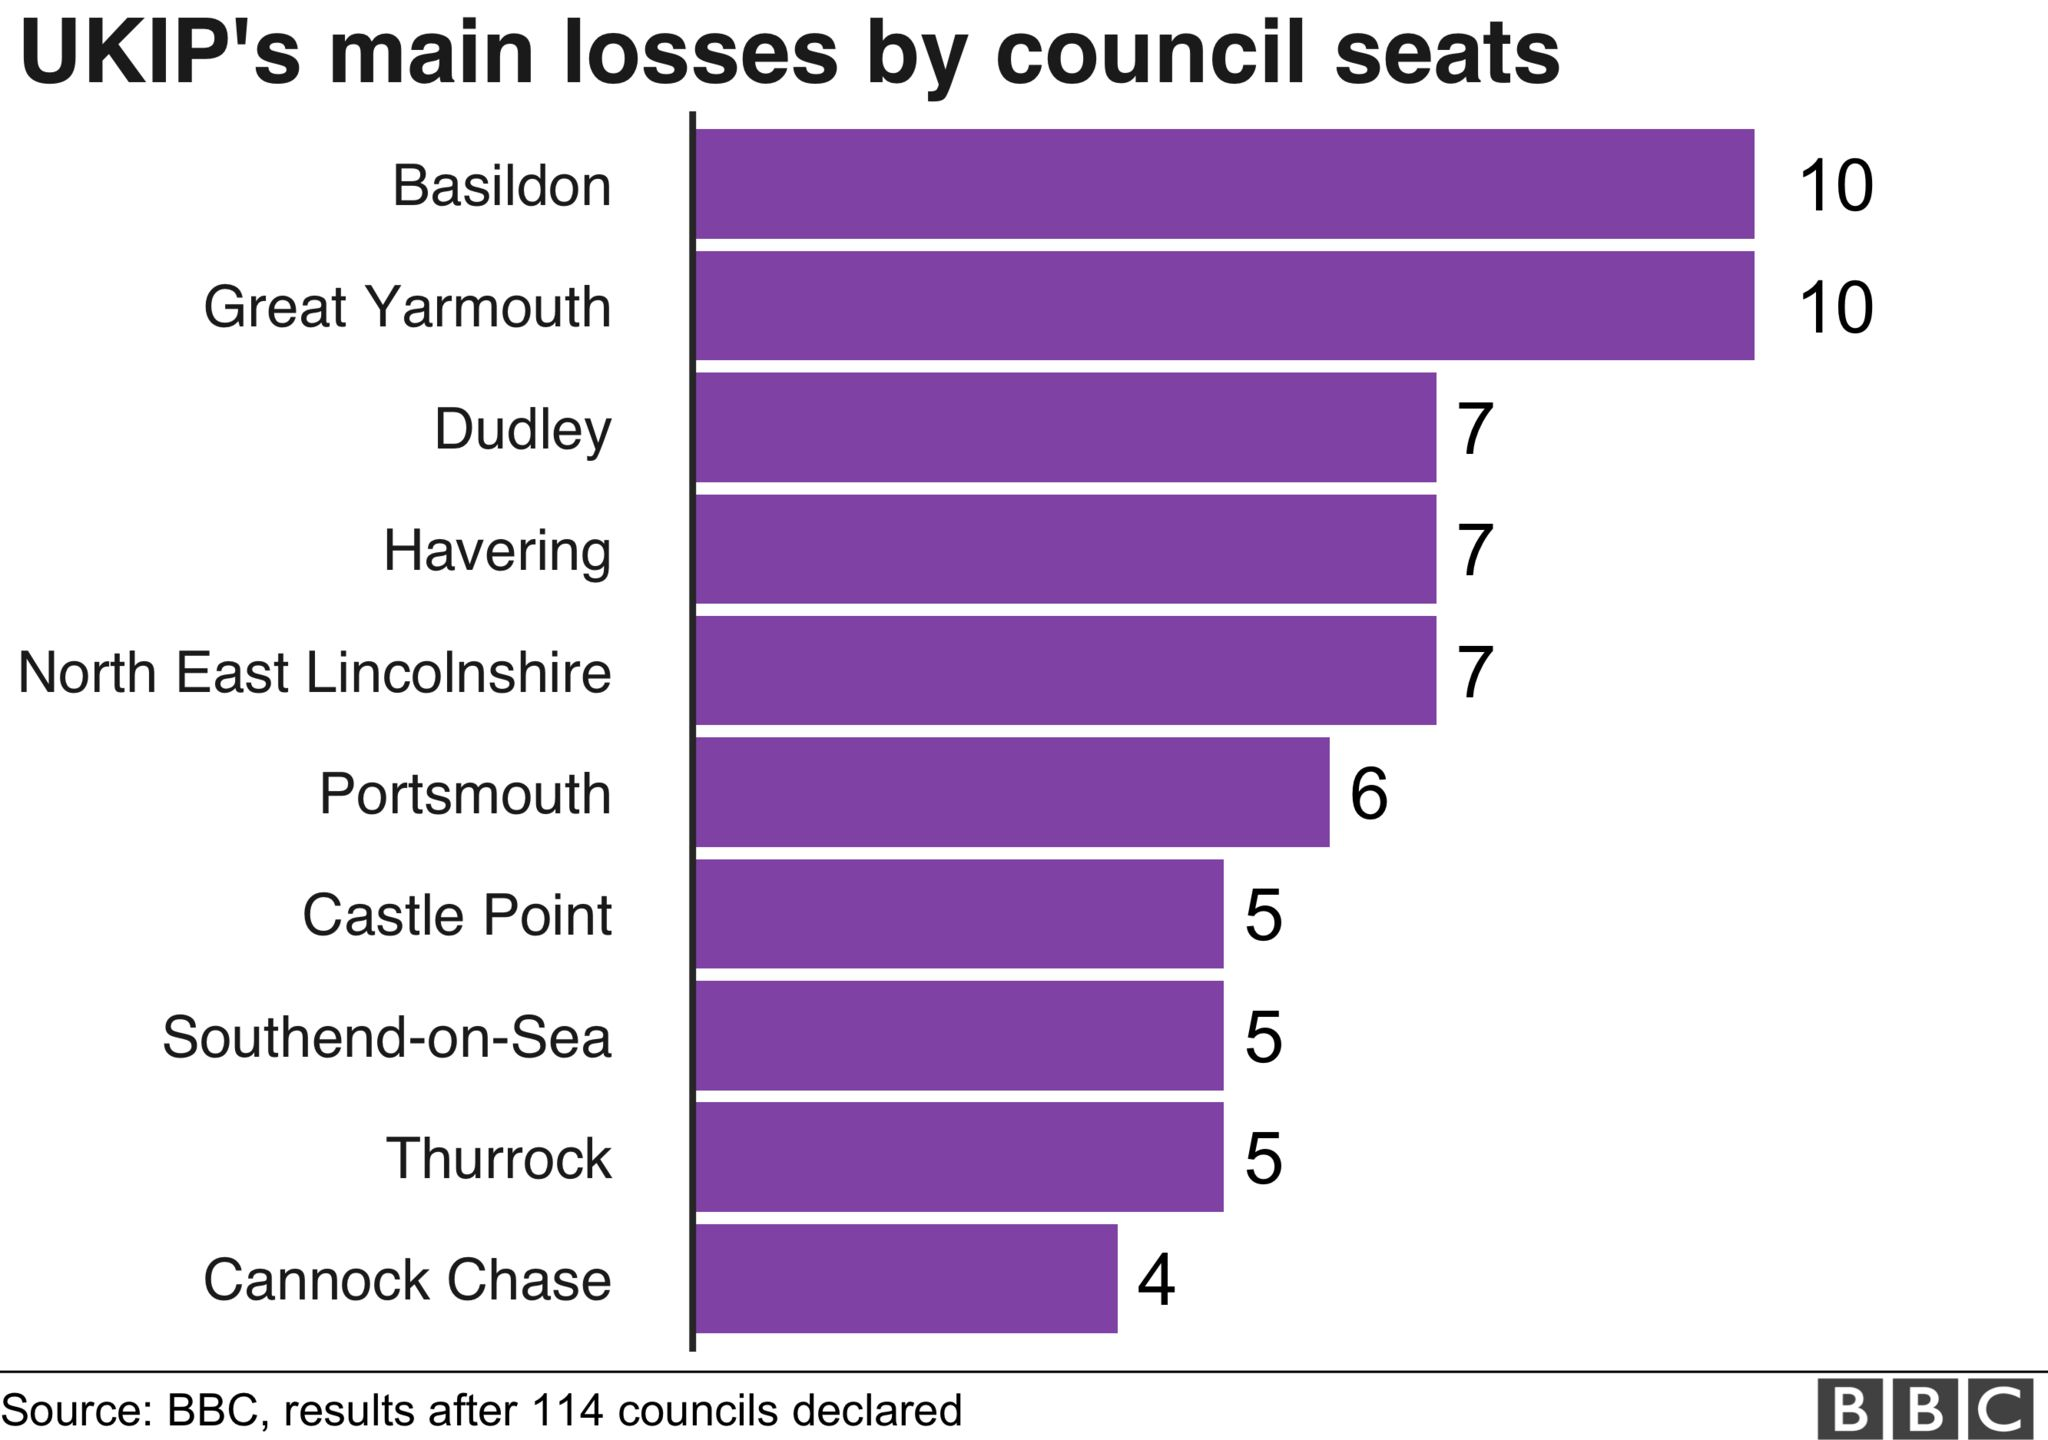 UKIP losses by council